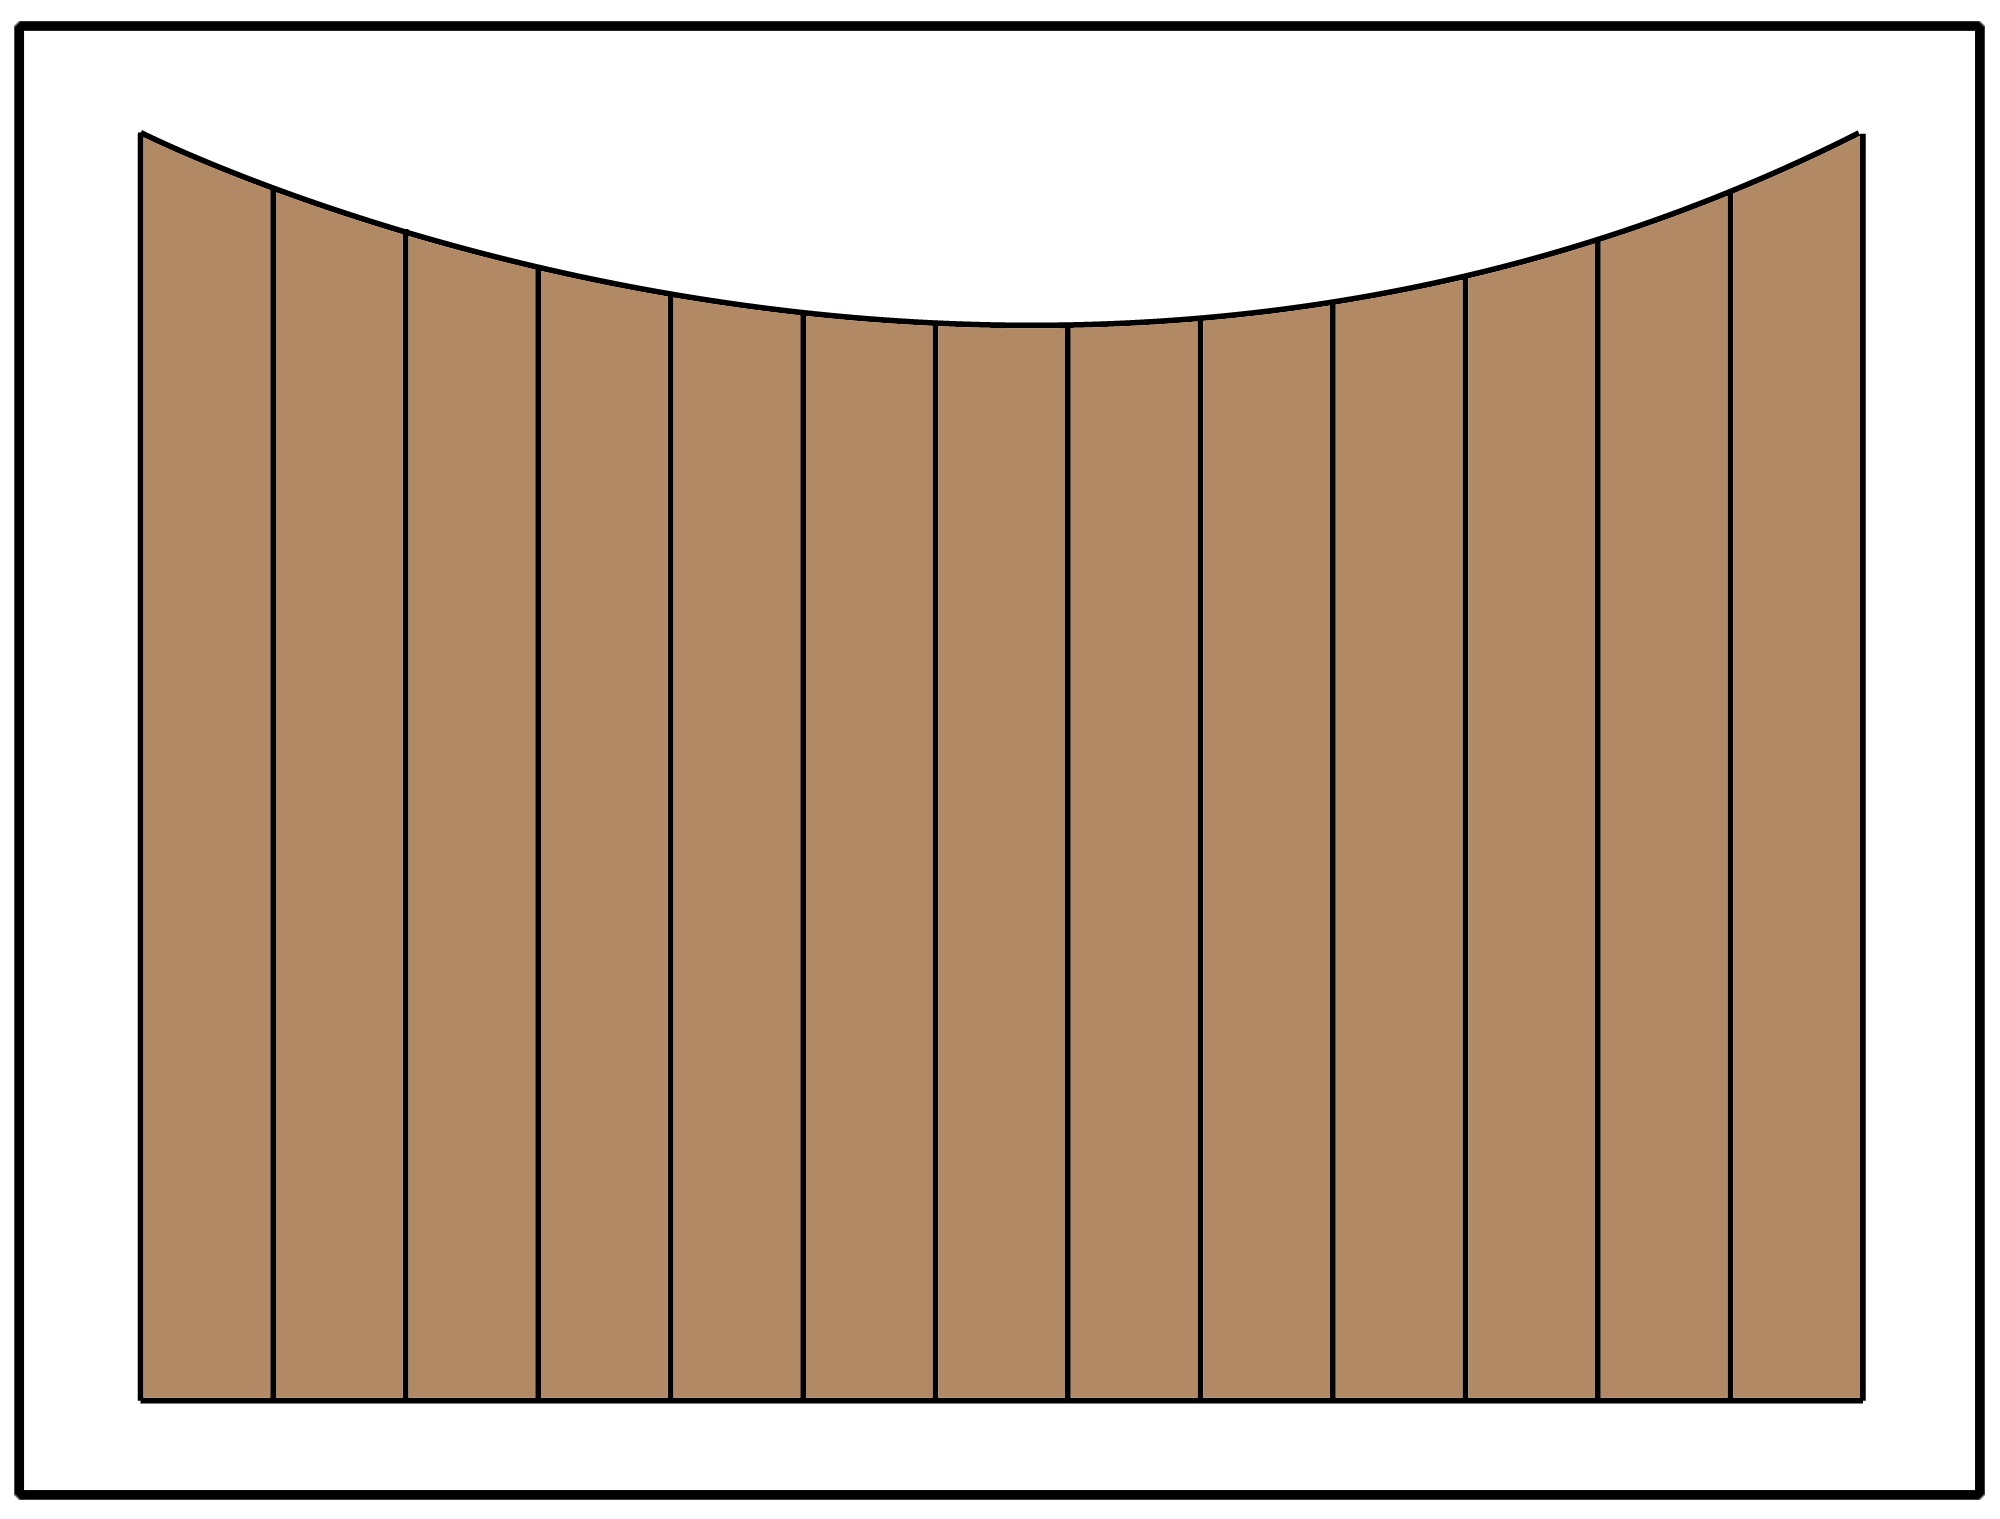 Privacy fence with an scalloped curve in the panel